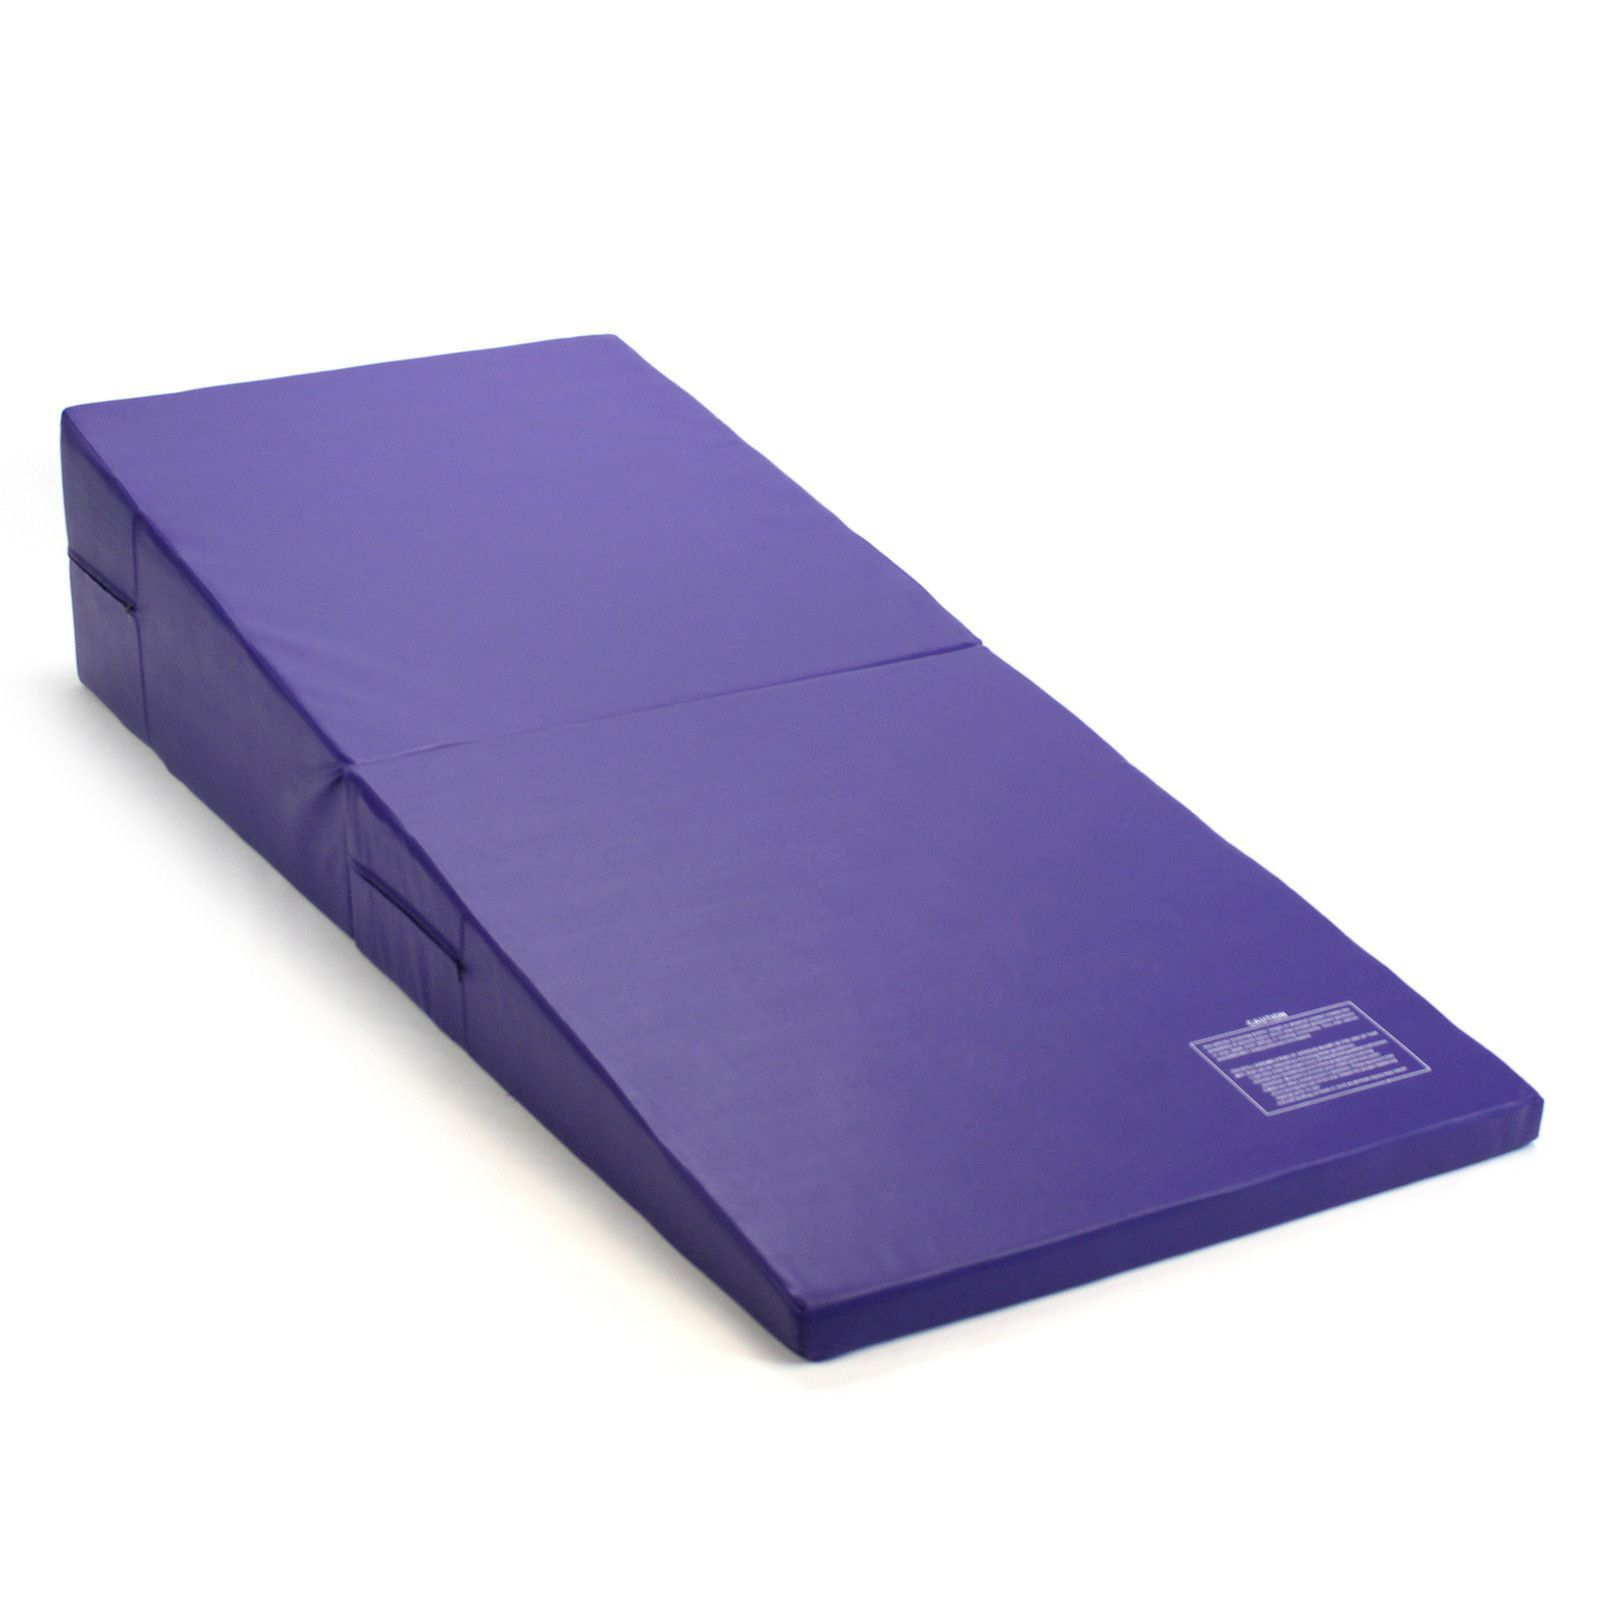 mat mats pilates accessories yoga exercise diy gym gymnastic itm workout gymnastics fitness